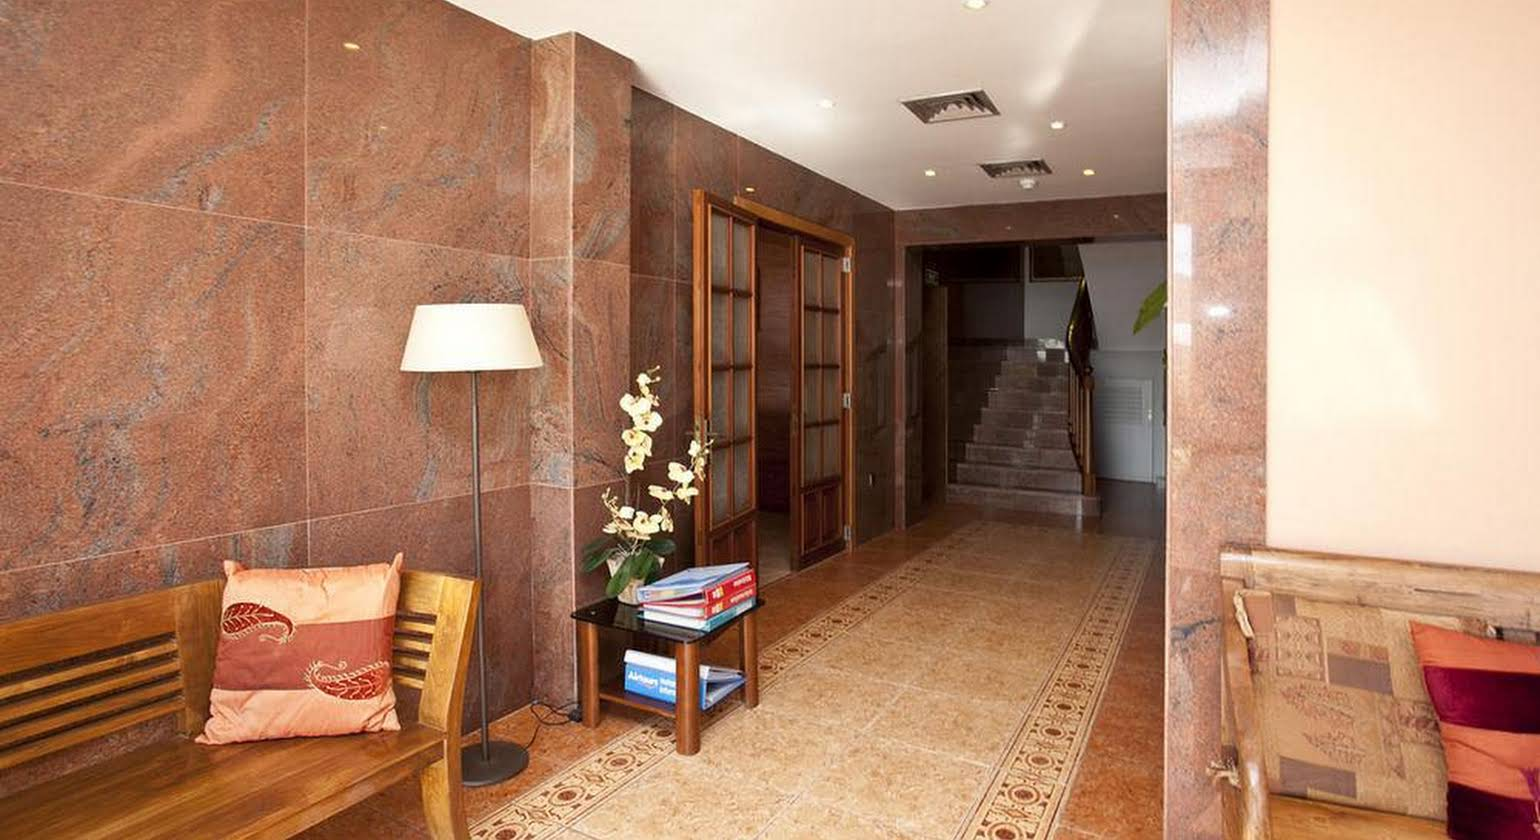 Hotel Ses Figueres